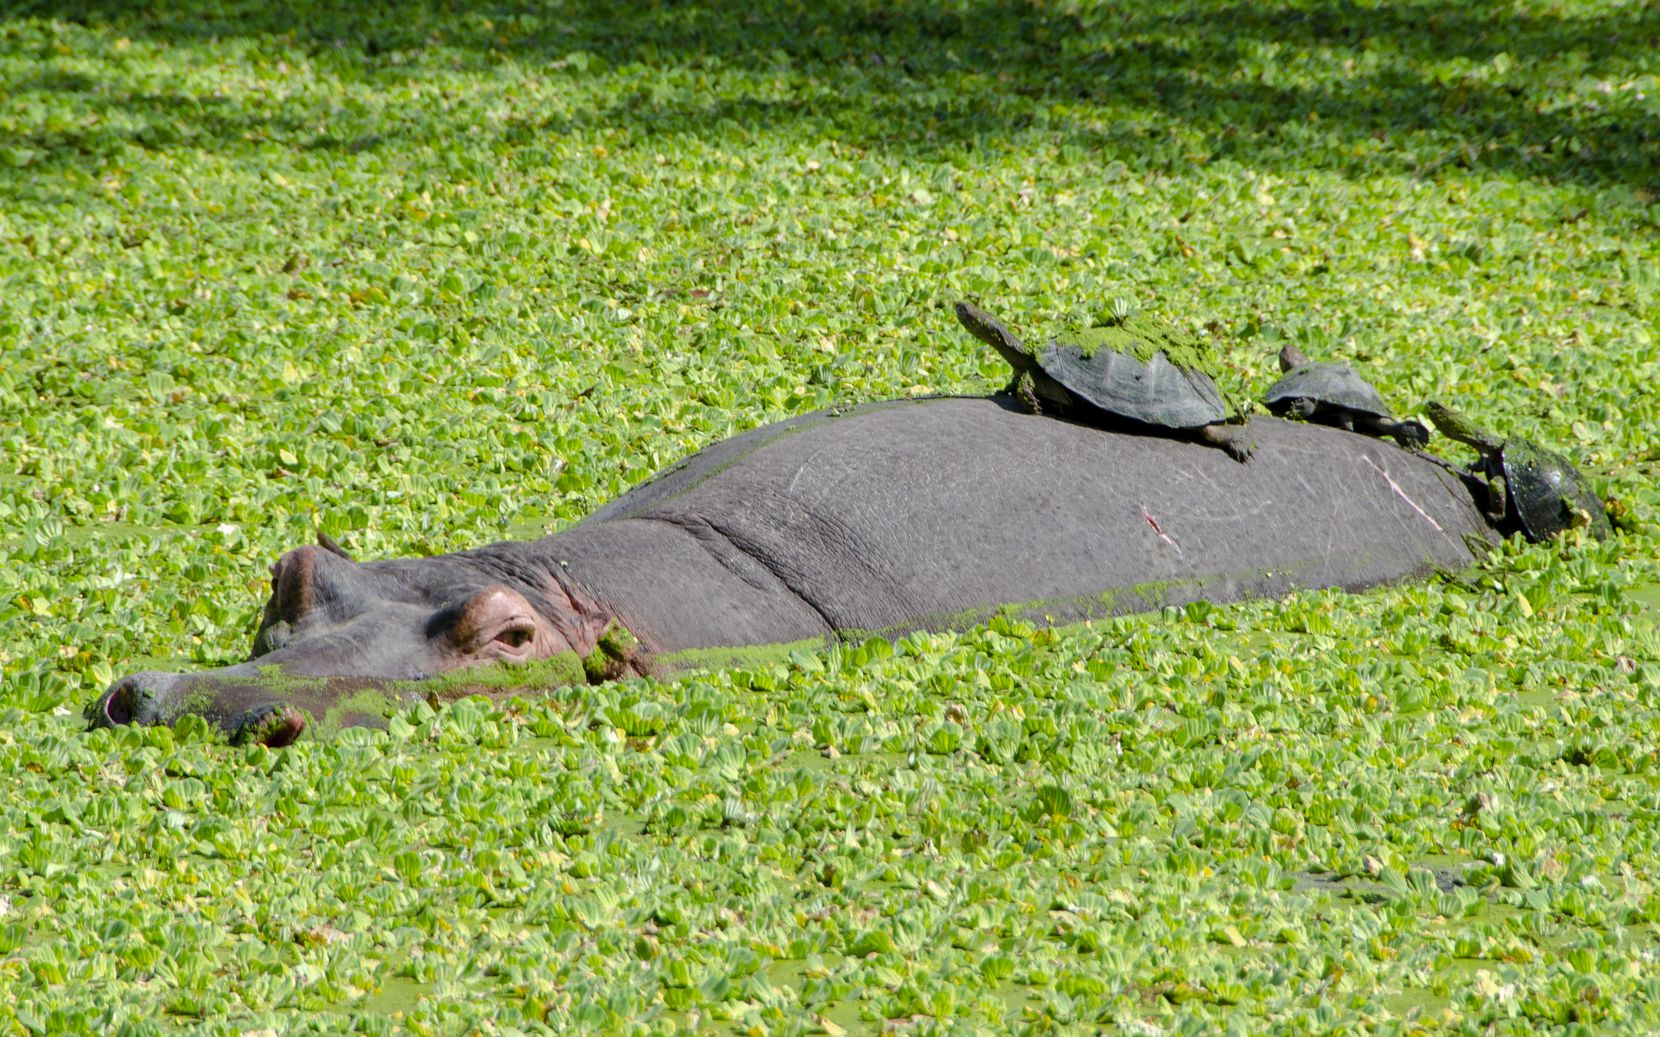 Harry the Hippo and his turtle friends lounge in the lagoon at Bilimungwe Camp.